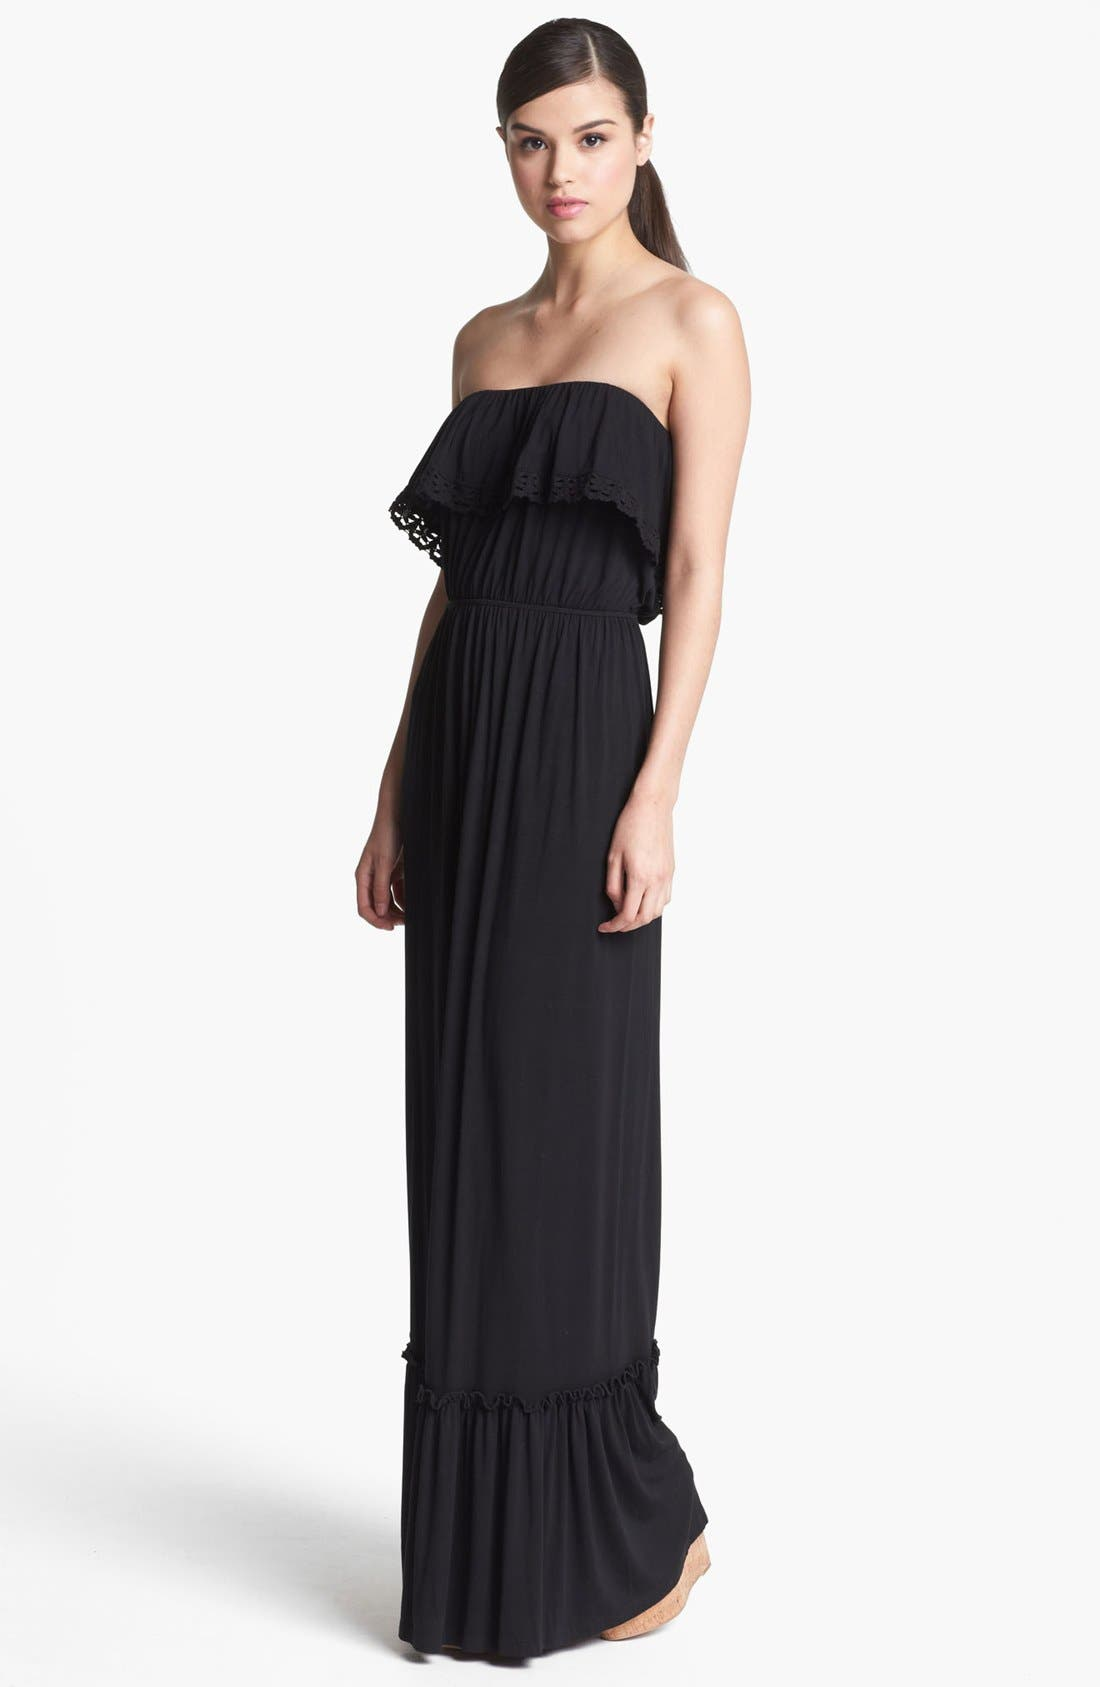 Alternate Image 1 Selected - Felicity & Coco Ruffled Strapless Maxi Dress (Nordstrom Exclusive)